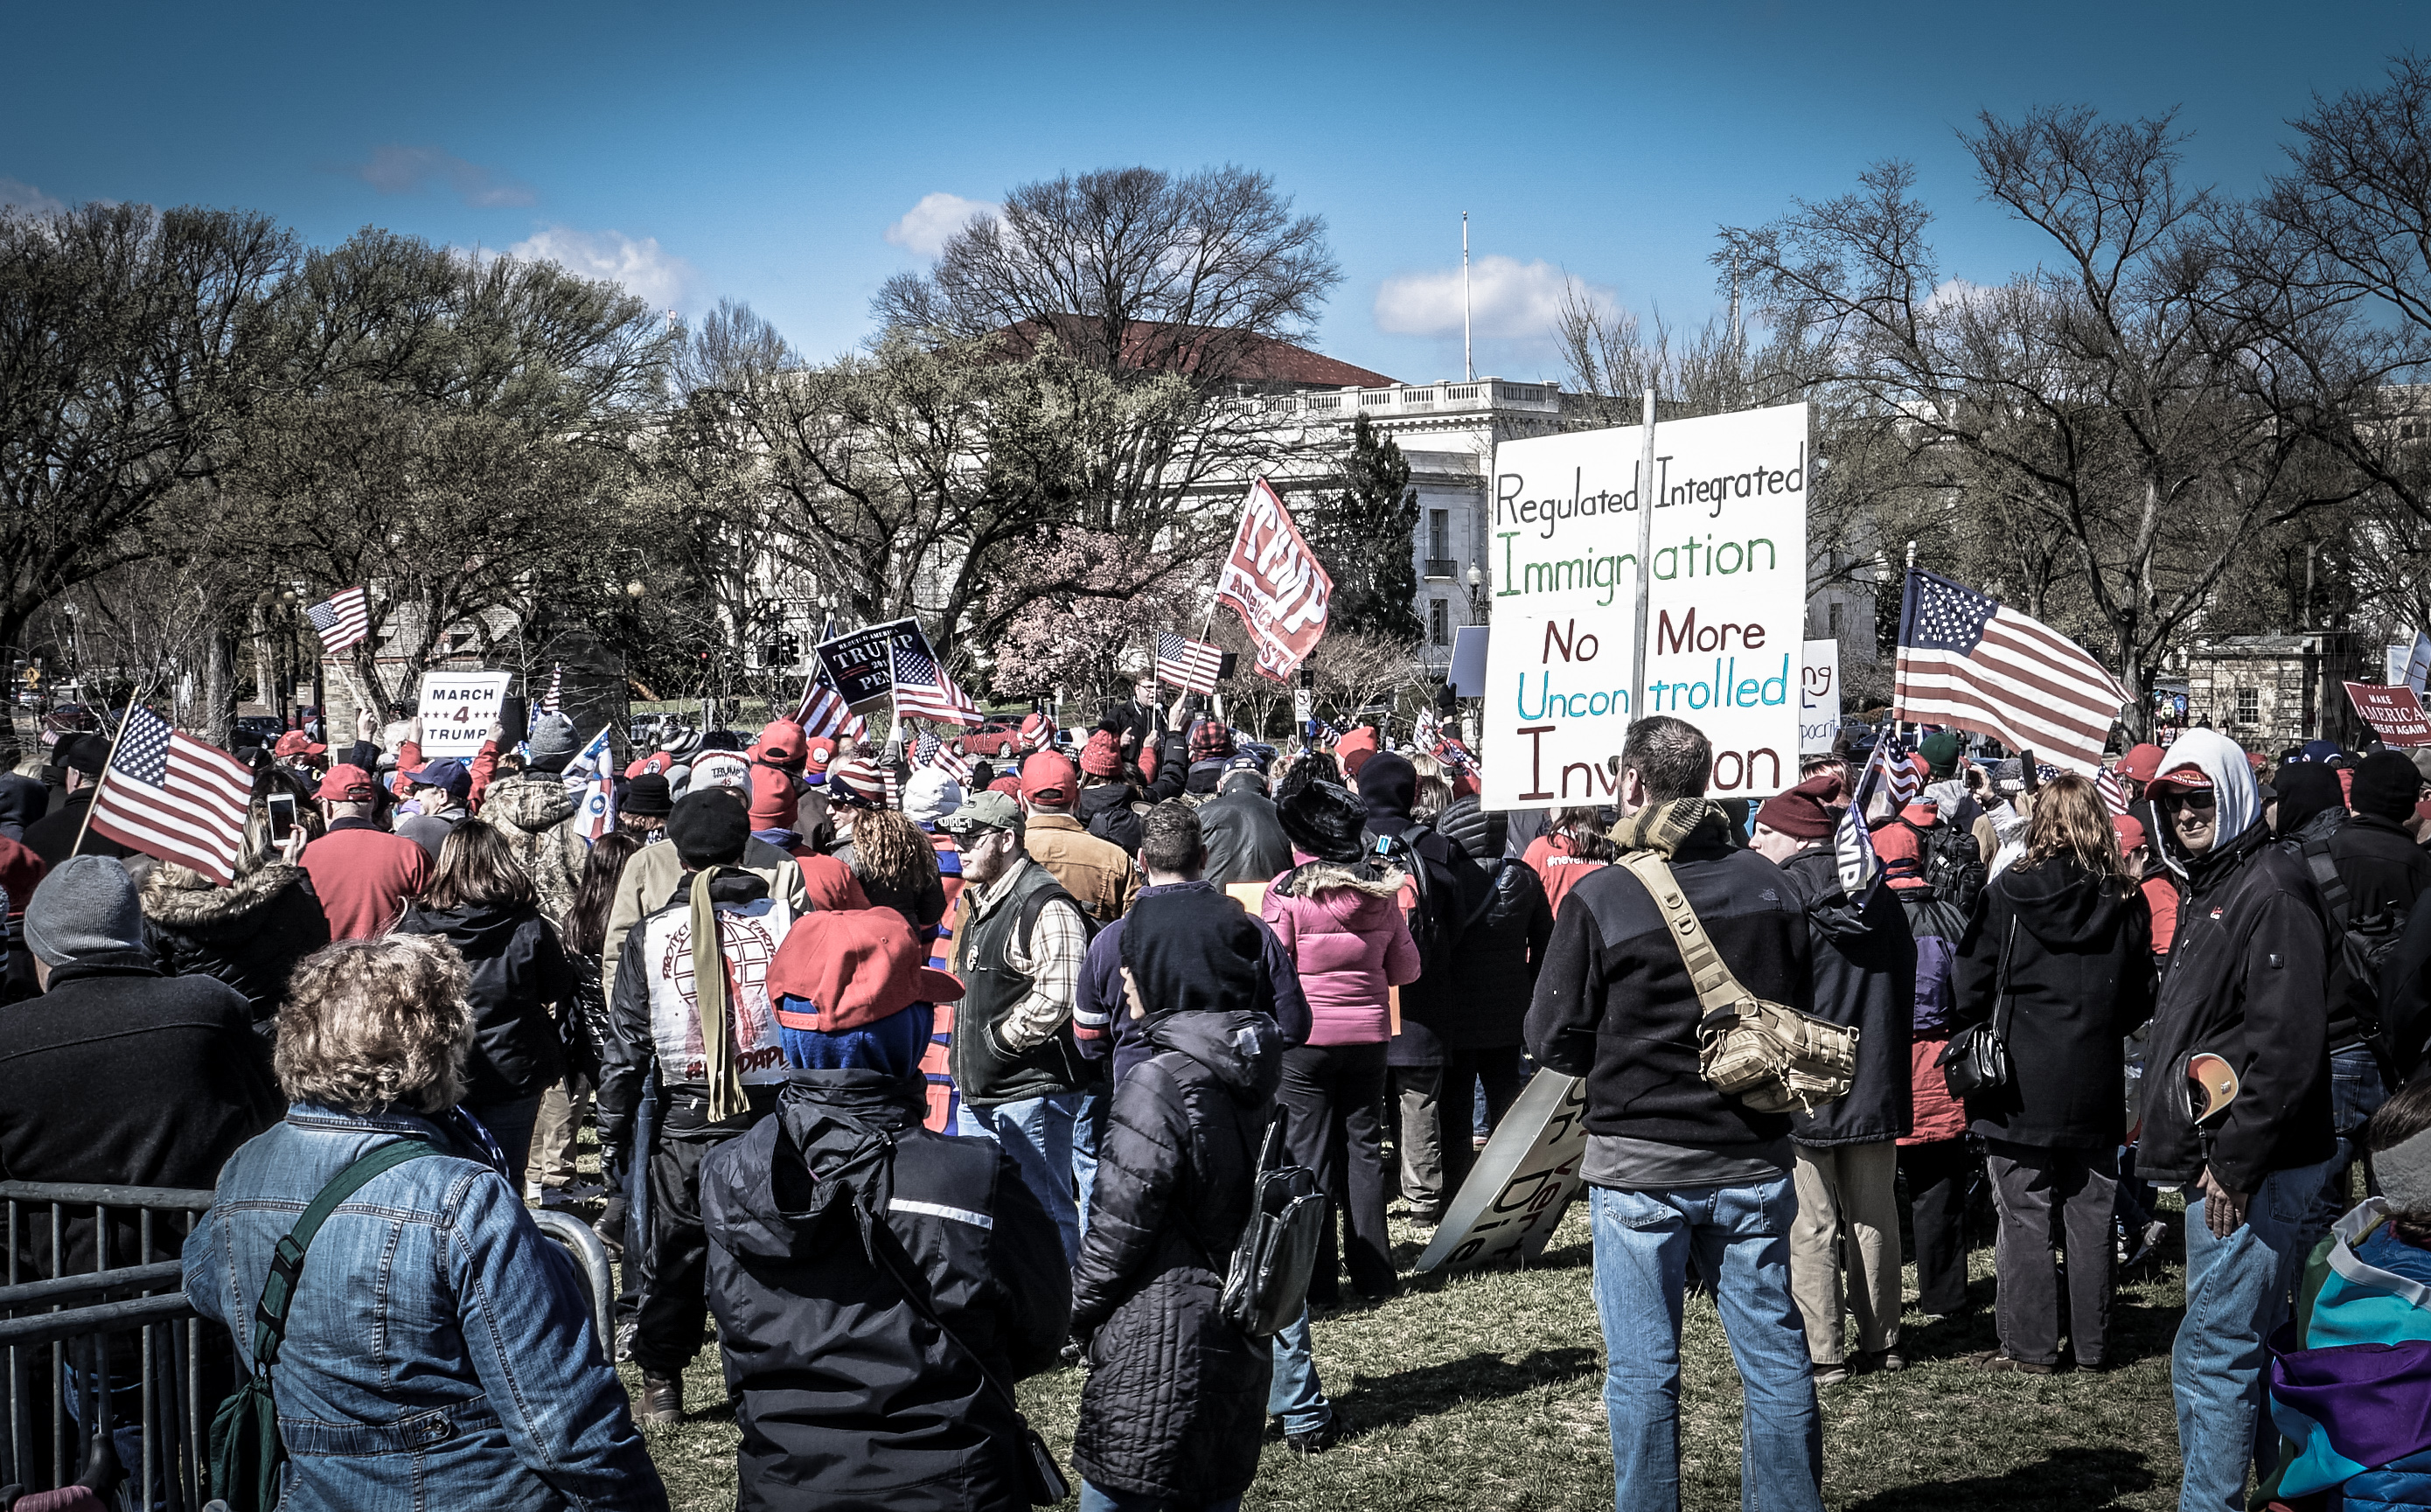 Demonstrations in support of Donald Trump - Wikipedia